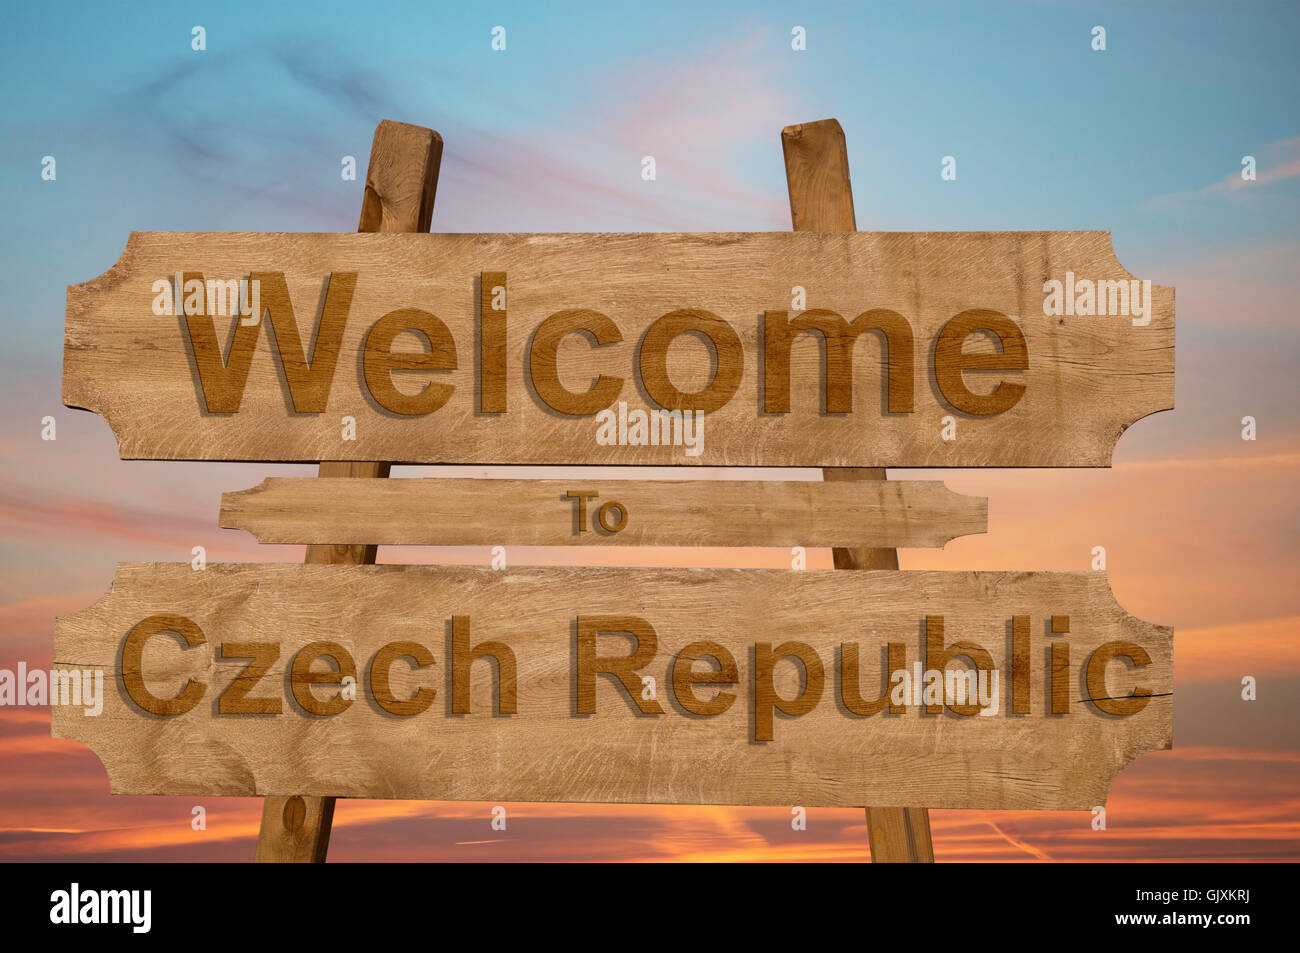 Welcome To Czech Republic Stock Photos Welcome To Czech Republic